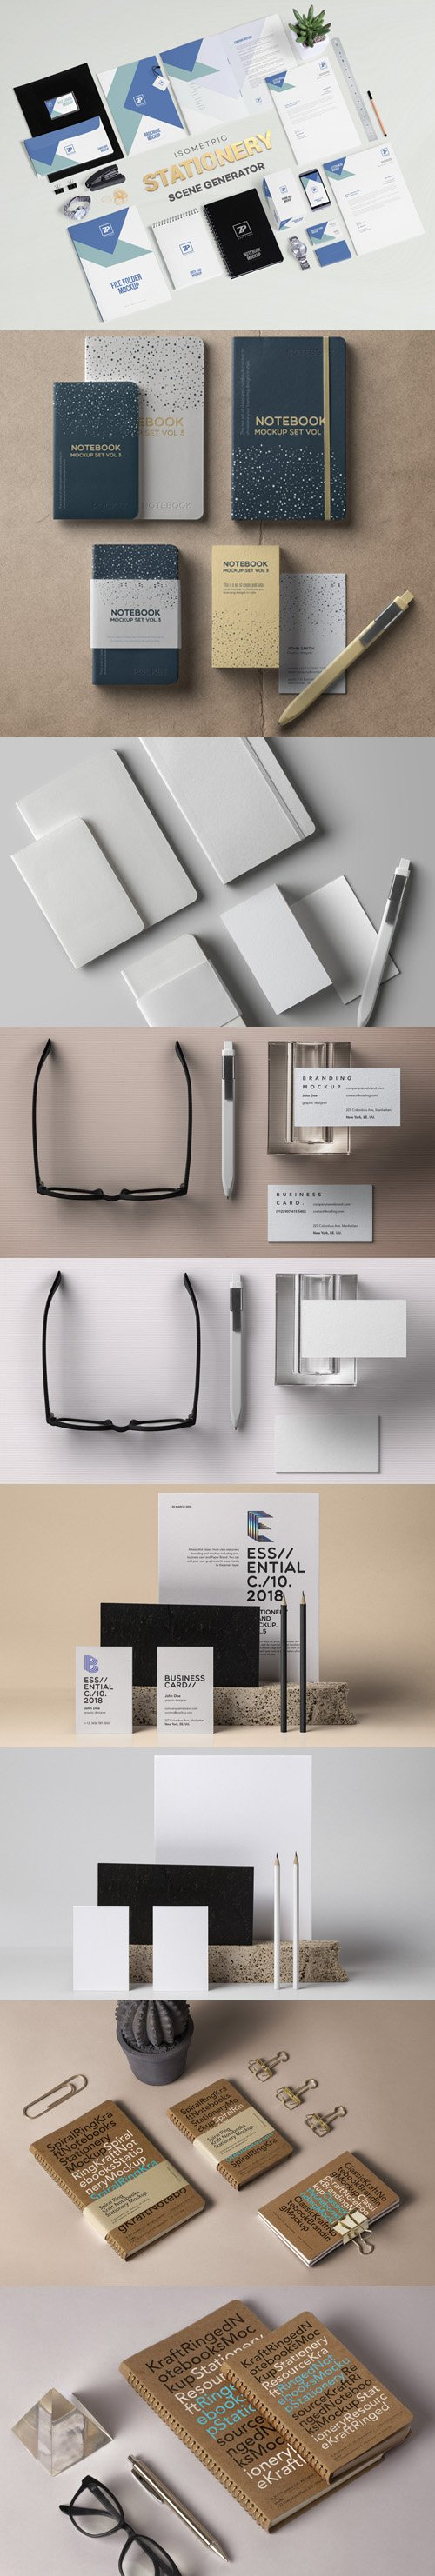 9 Corporate Identity Branding Stationary PSD Mockups Collection